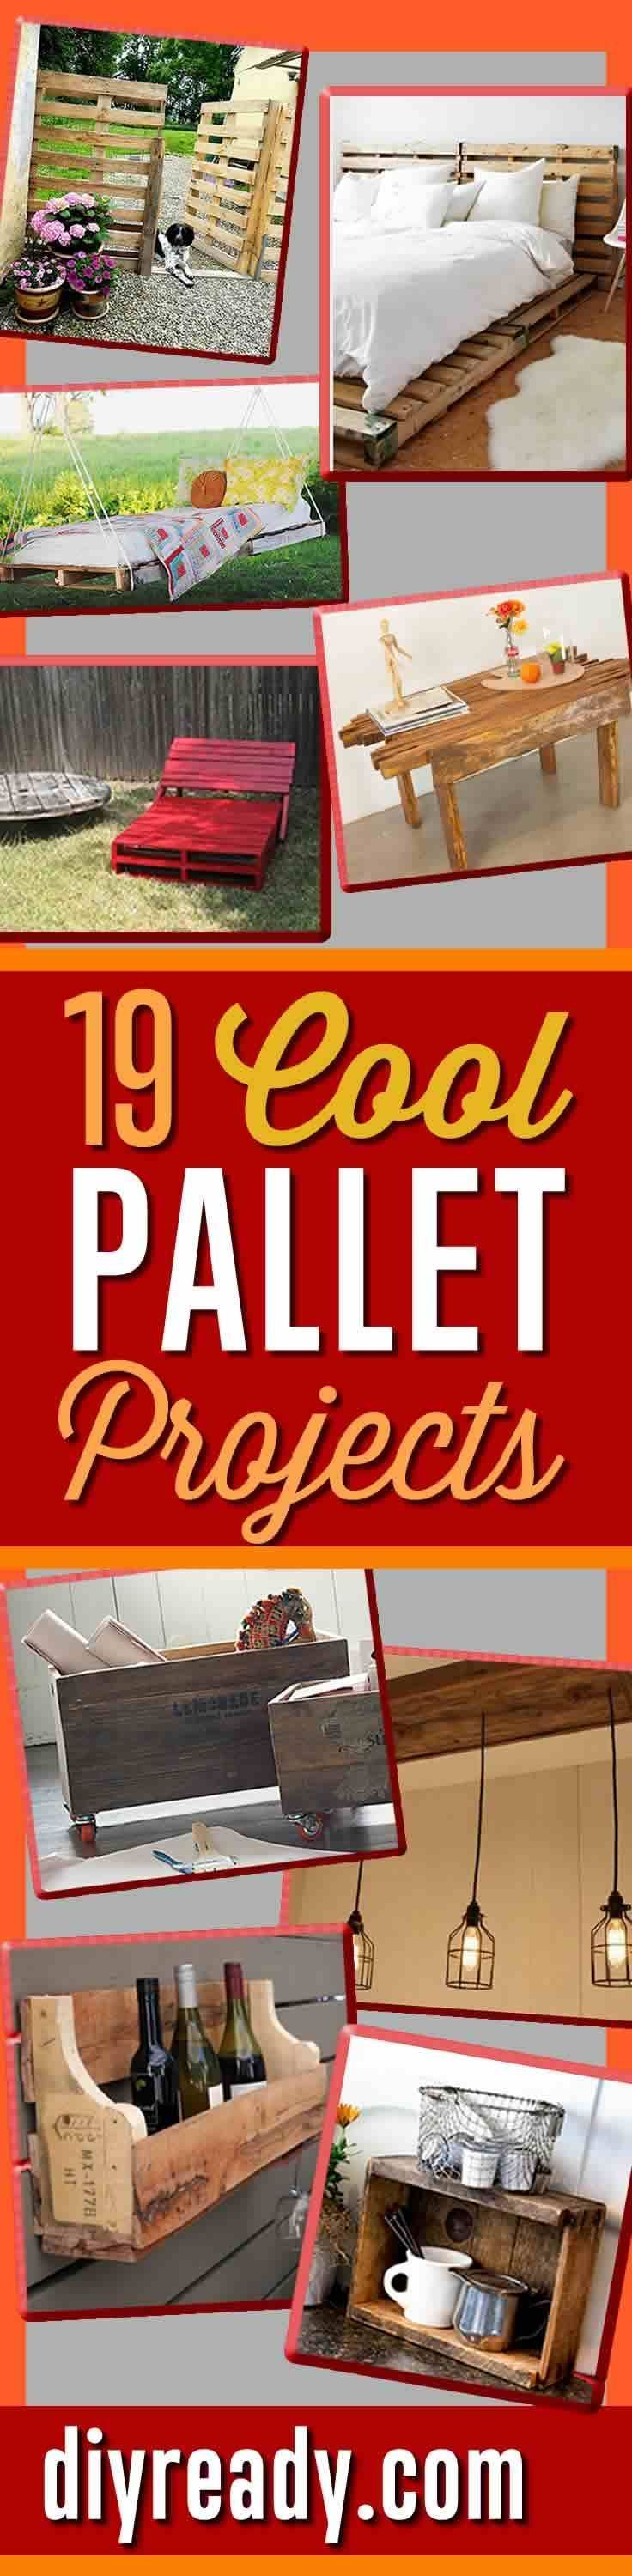 Cool DIY Pallet Projects and DIY Pallet Furniture | Coffee Table, Pallet Bed, Pallet Swing, Pallet Wine Rack, Shelves and More Easy Repurposed Pallet Ideas for Upcycling with Wooden Pallets http://diyready.com/19-cool-pallet-projects-pallet-furniture/